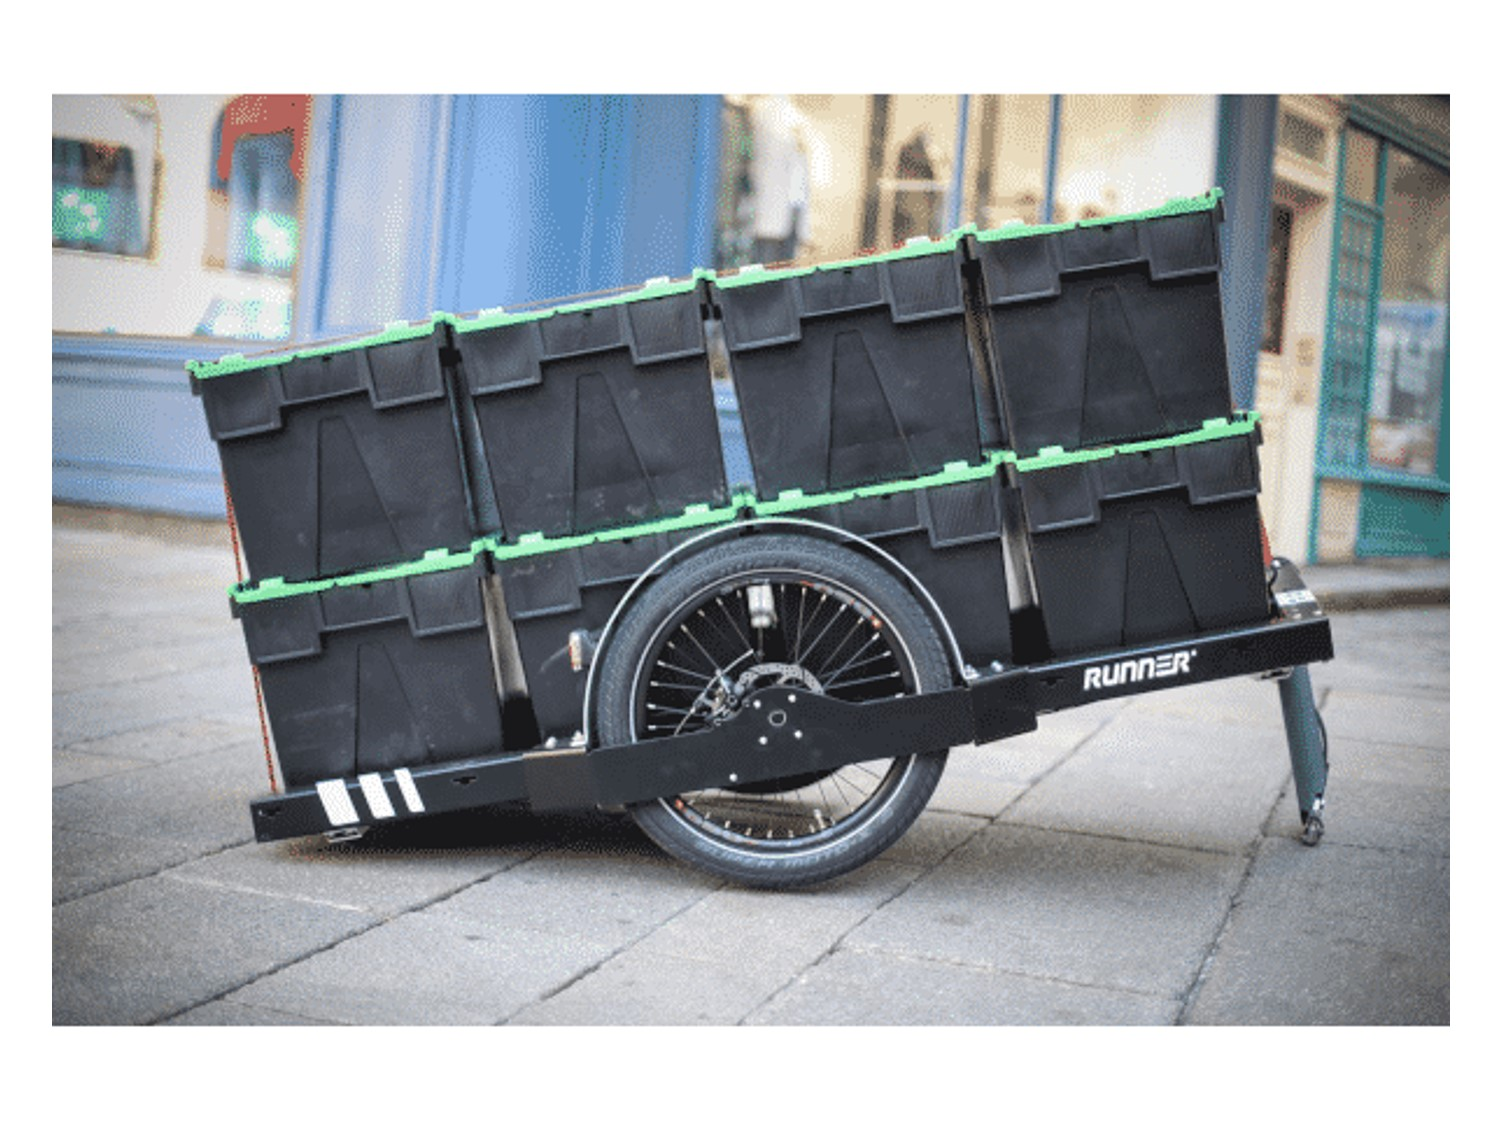 Flexomidal Runner bike trailer with 4 crocodile crates on the ground. Transform your plastic tray into an insulated box by adding a cotton insert from COLD & CO.